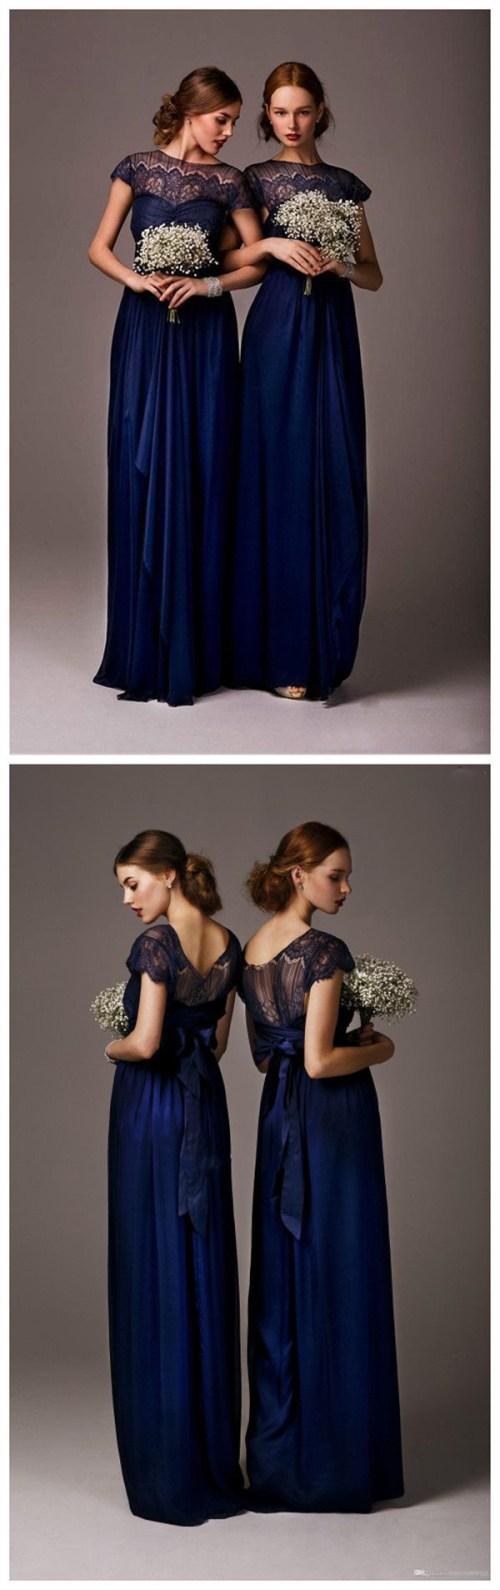 Medium Of Navy Bridesmaid Dresses